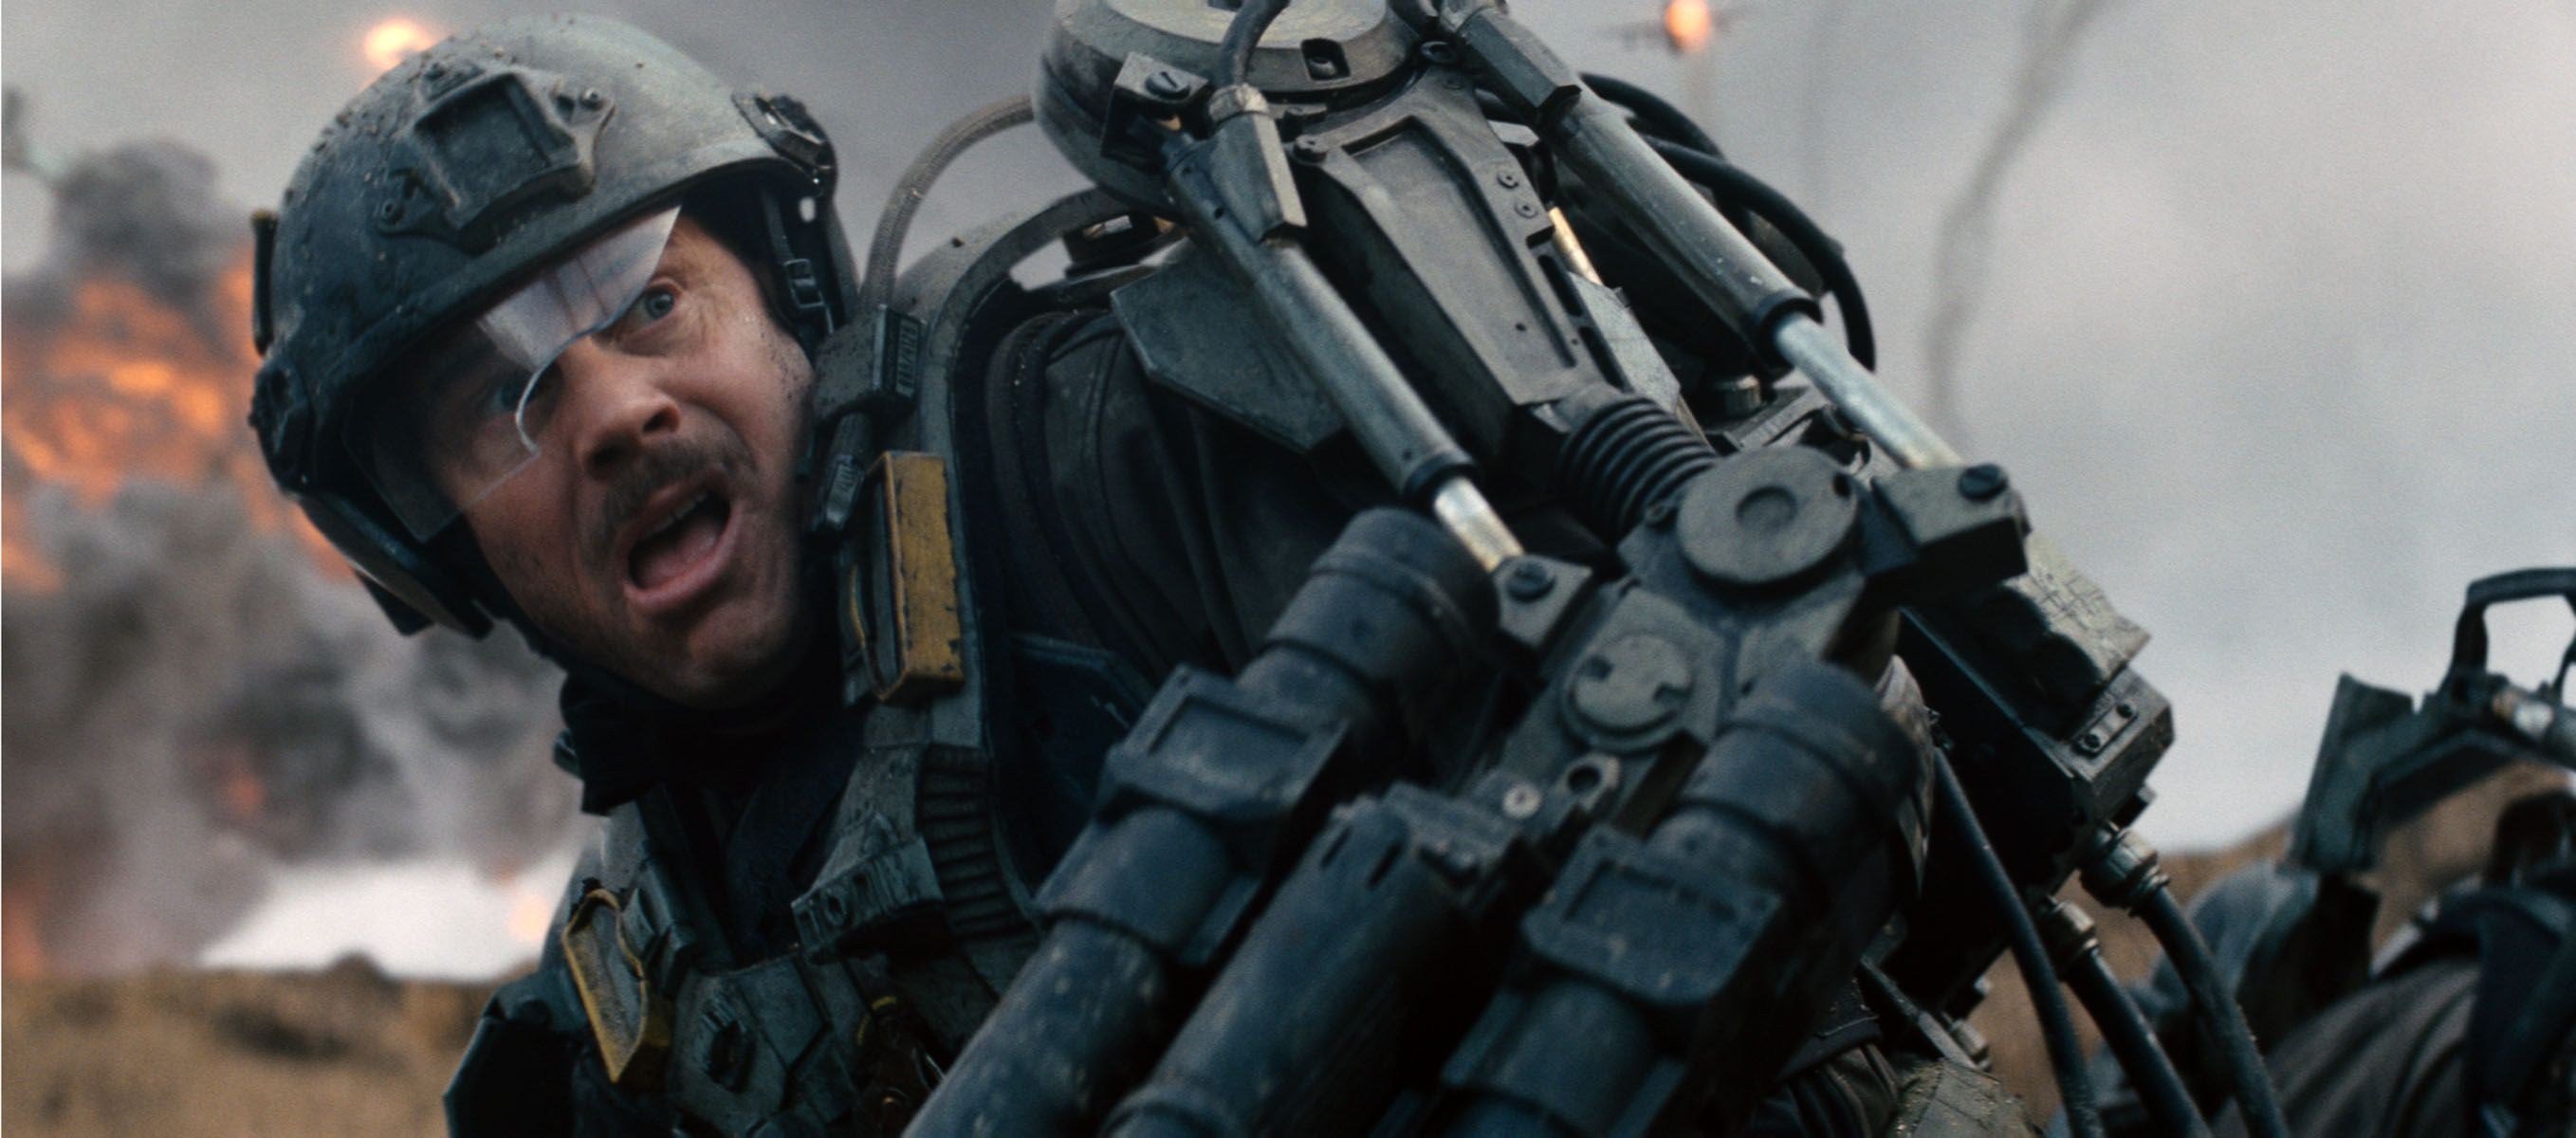 27 Edge Of Tomorrow Images Featuring Tom Cruise And Emily